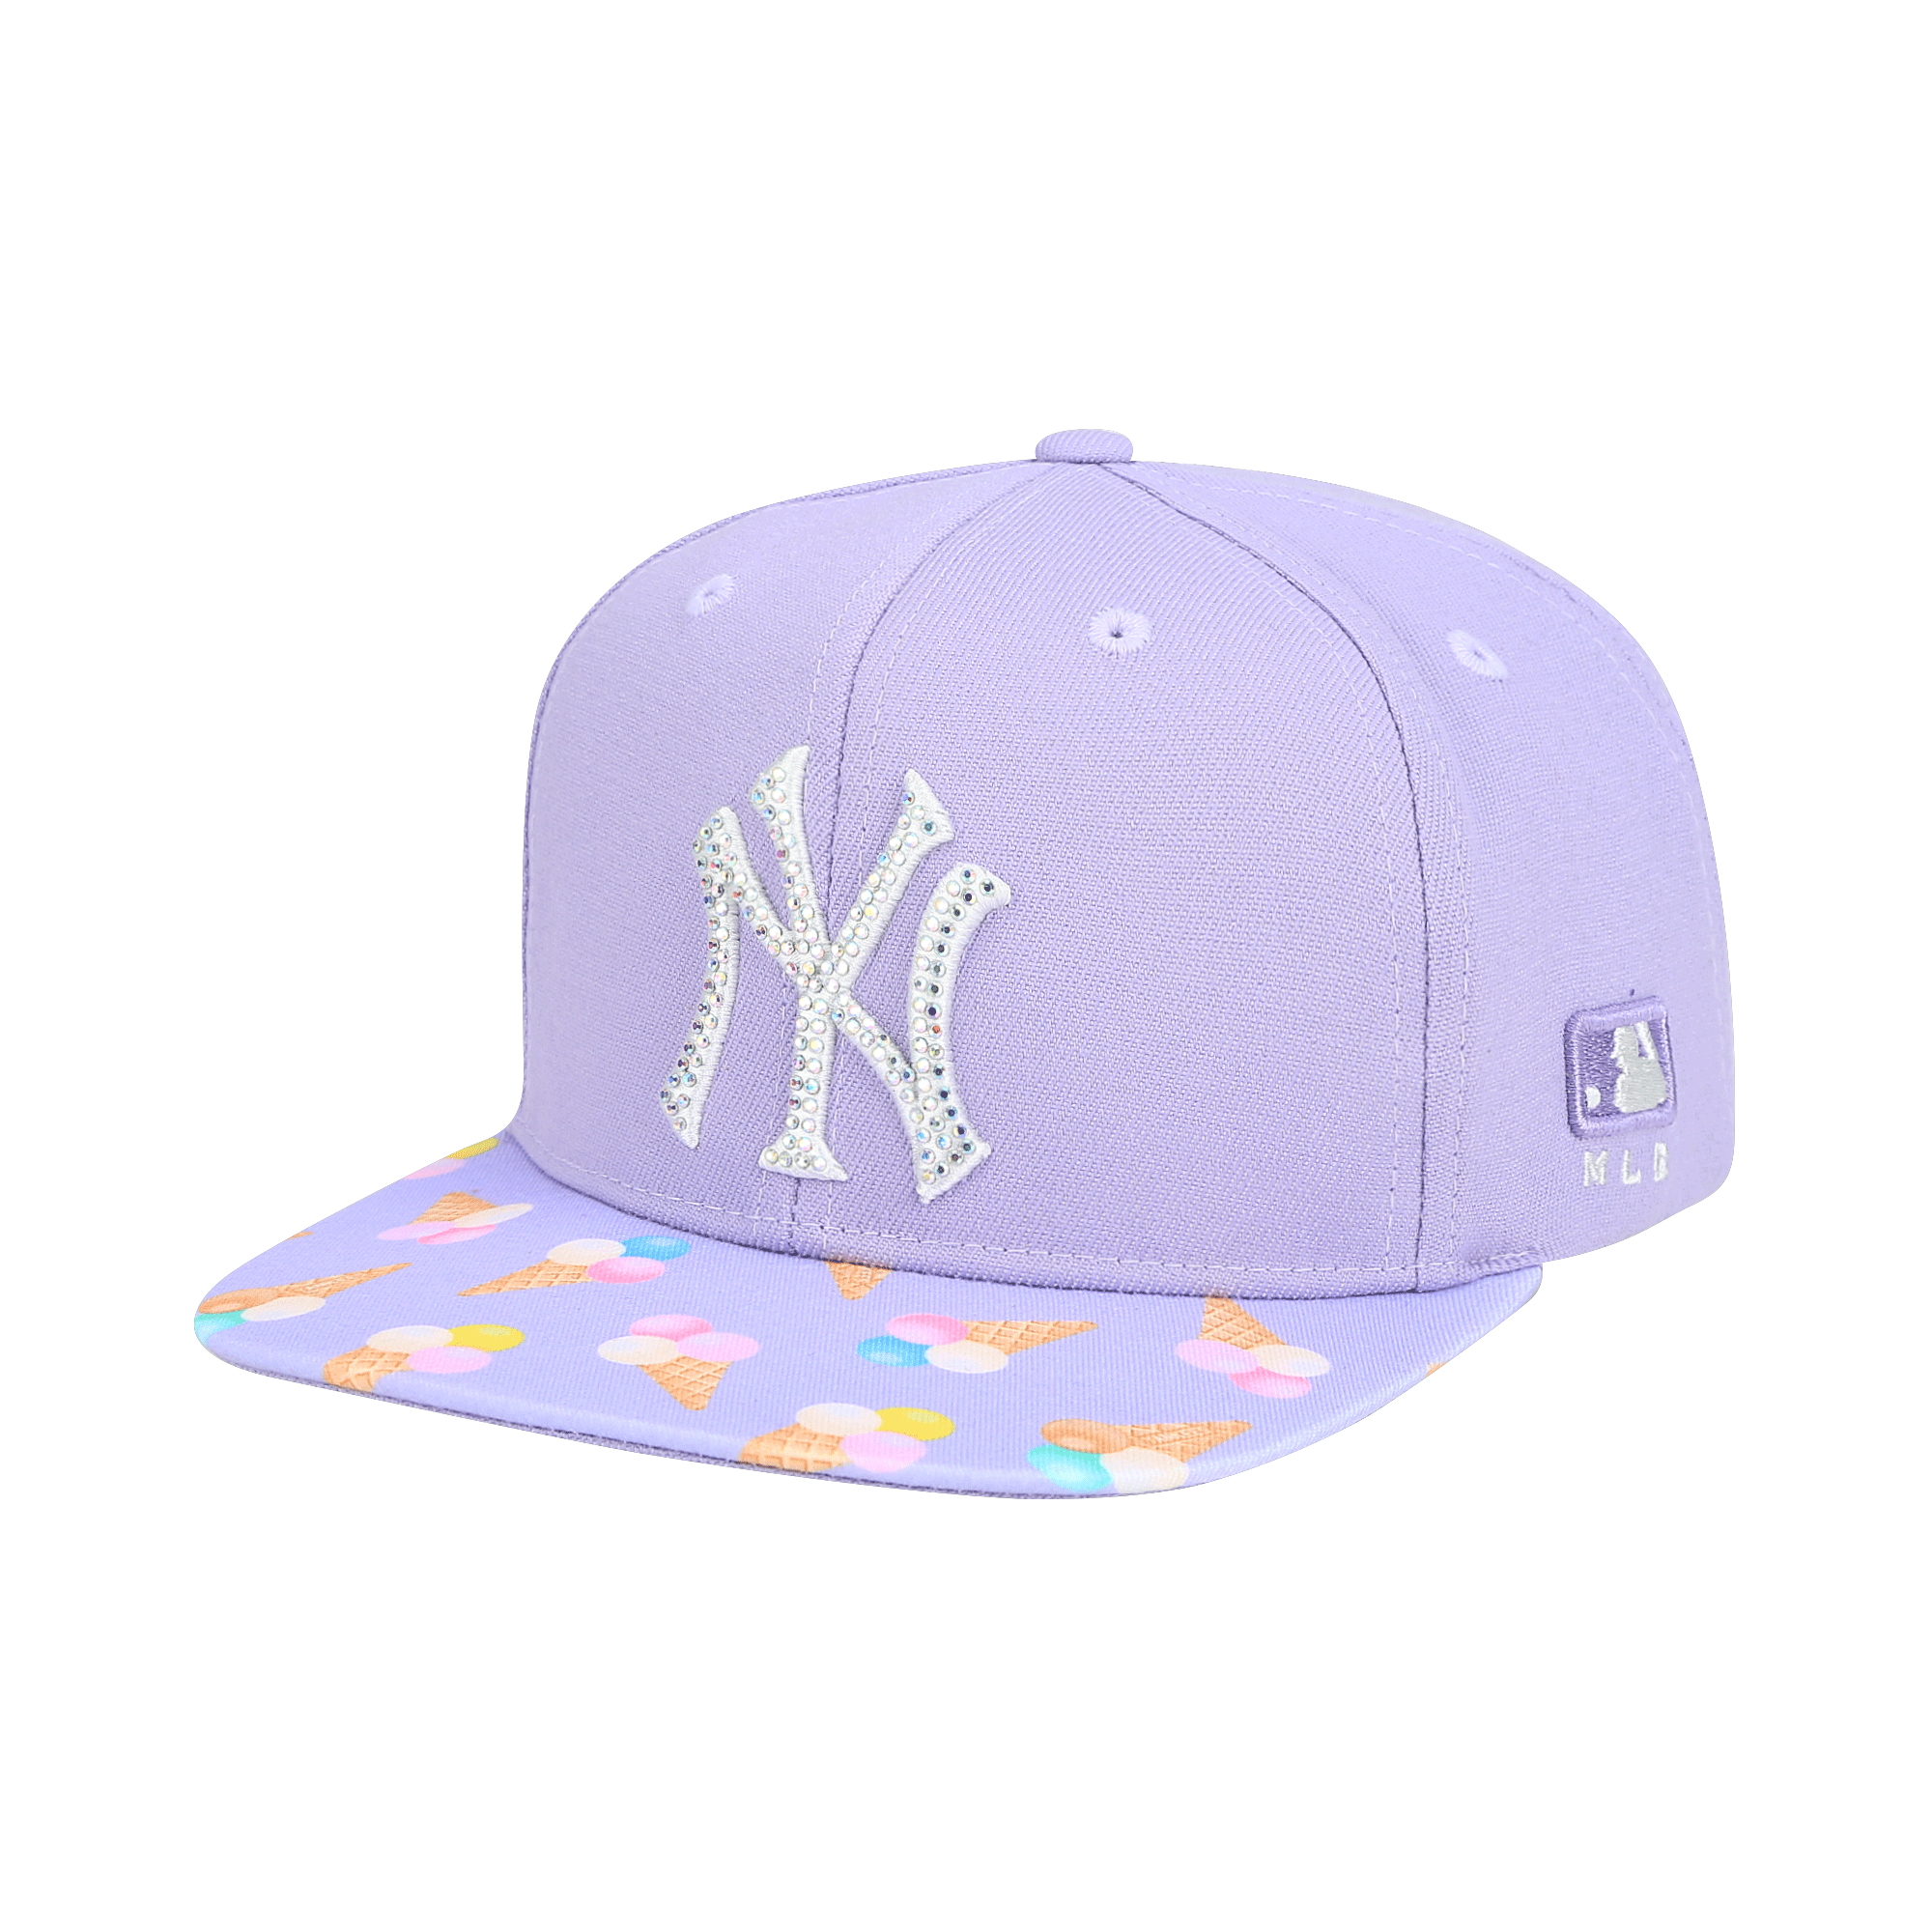 NEW YORK YANKEES ICE CREAM FLAT VISOR SNAPBACK